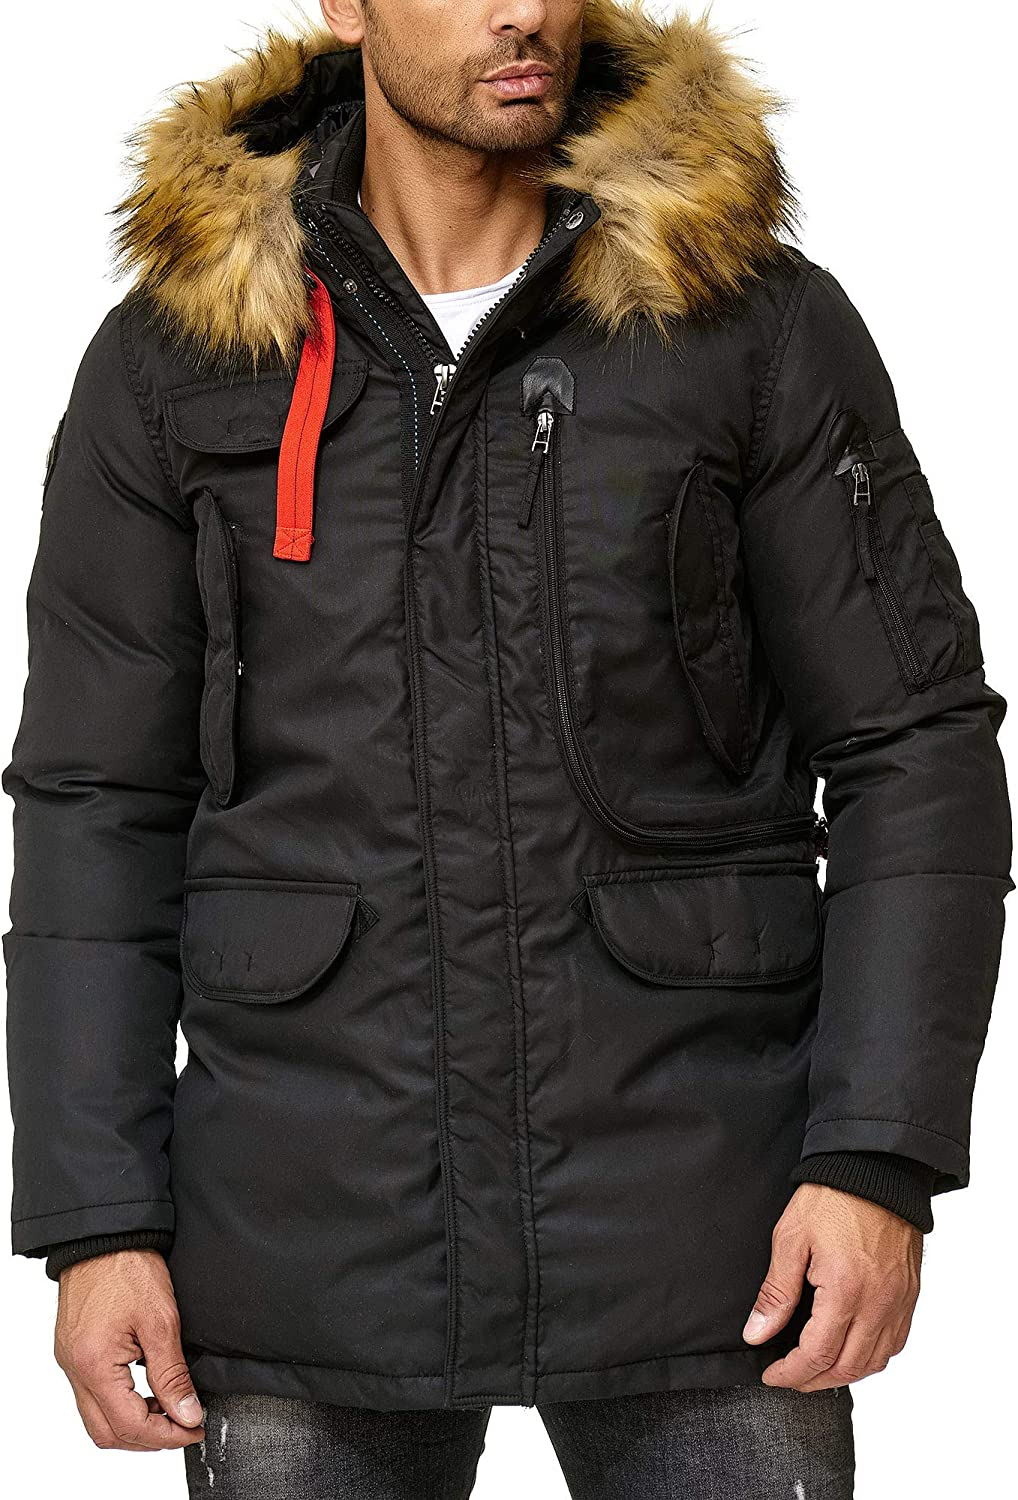 Redbridge Herren Parka Jacke Mantel Winterjacke Big Pocket